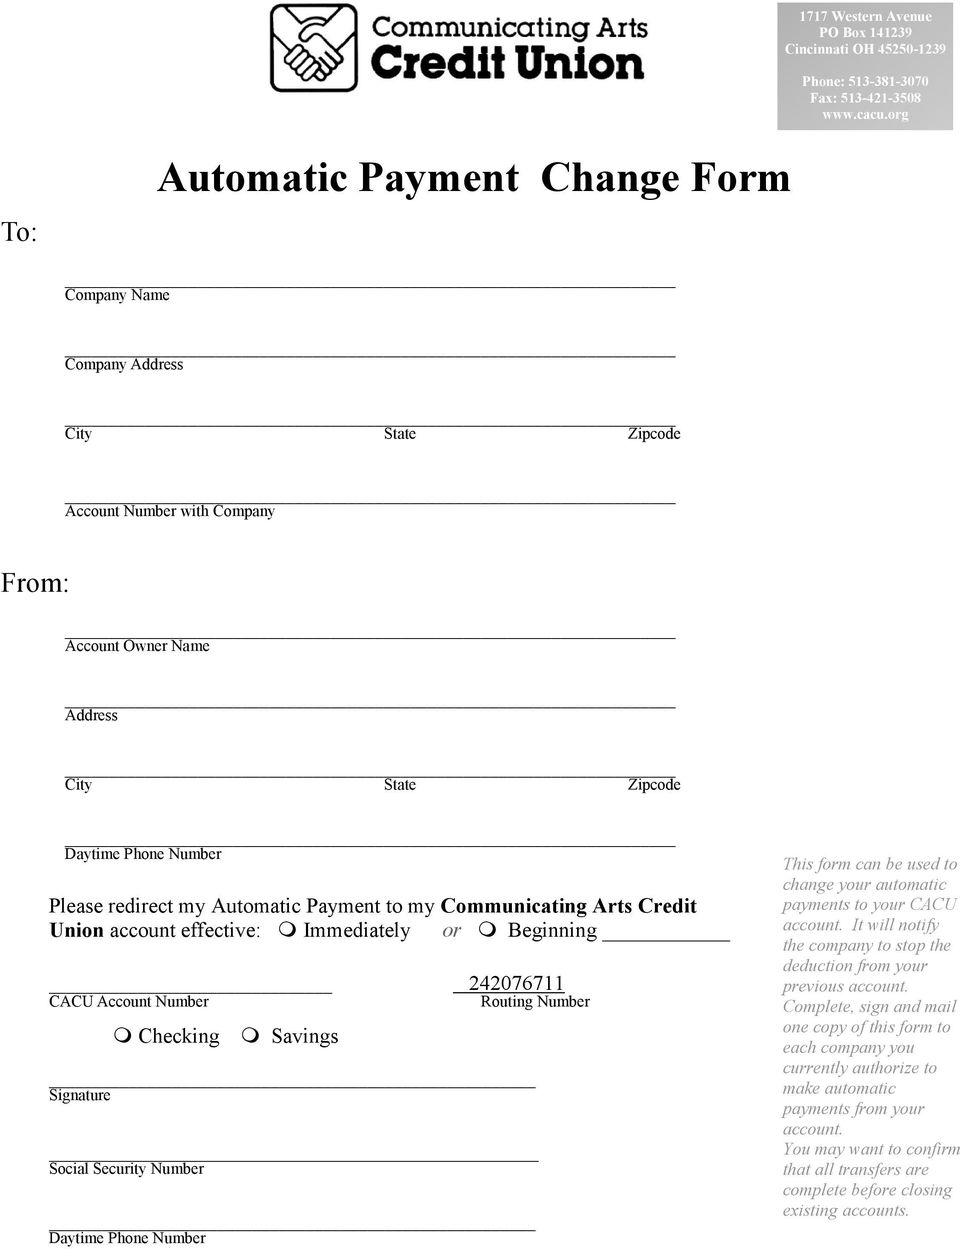 redirect my Automatic Payment to my Communicating Arts Credit Union account effective: Immediately or Beginning 242076711 CACU Account Number Routing Number Checking Savings Social Security Number